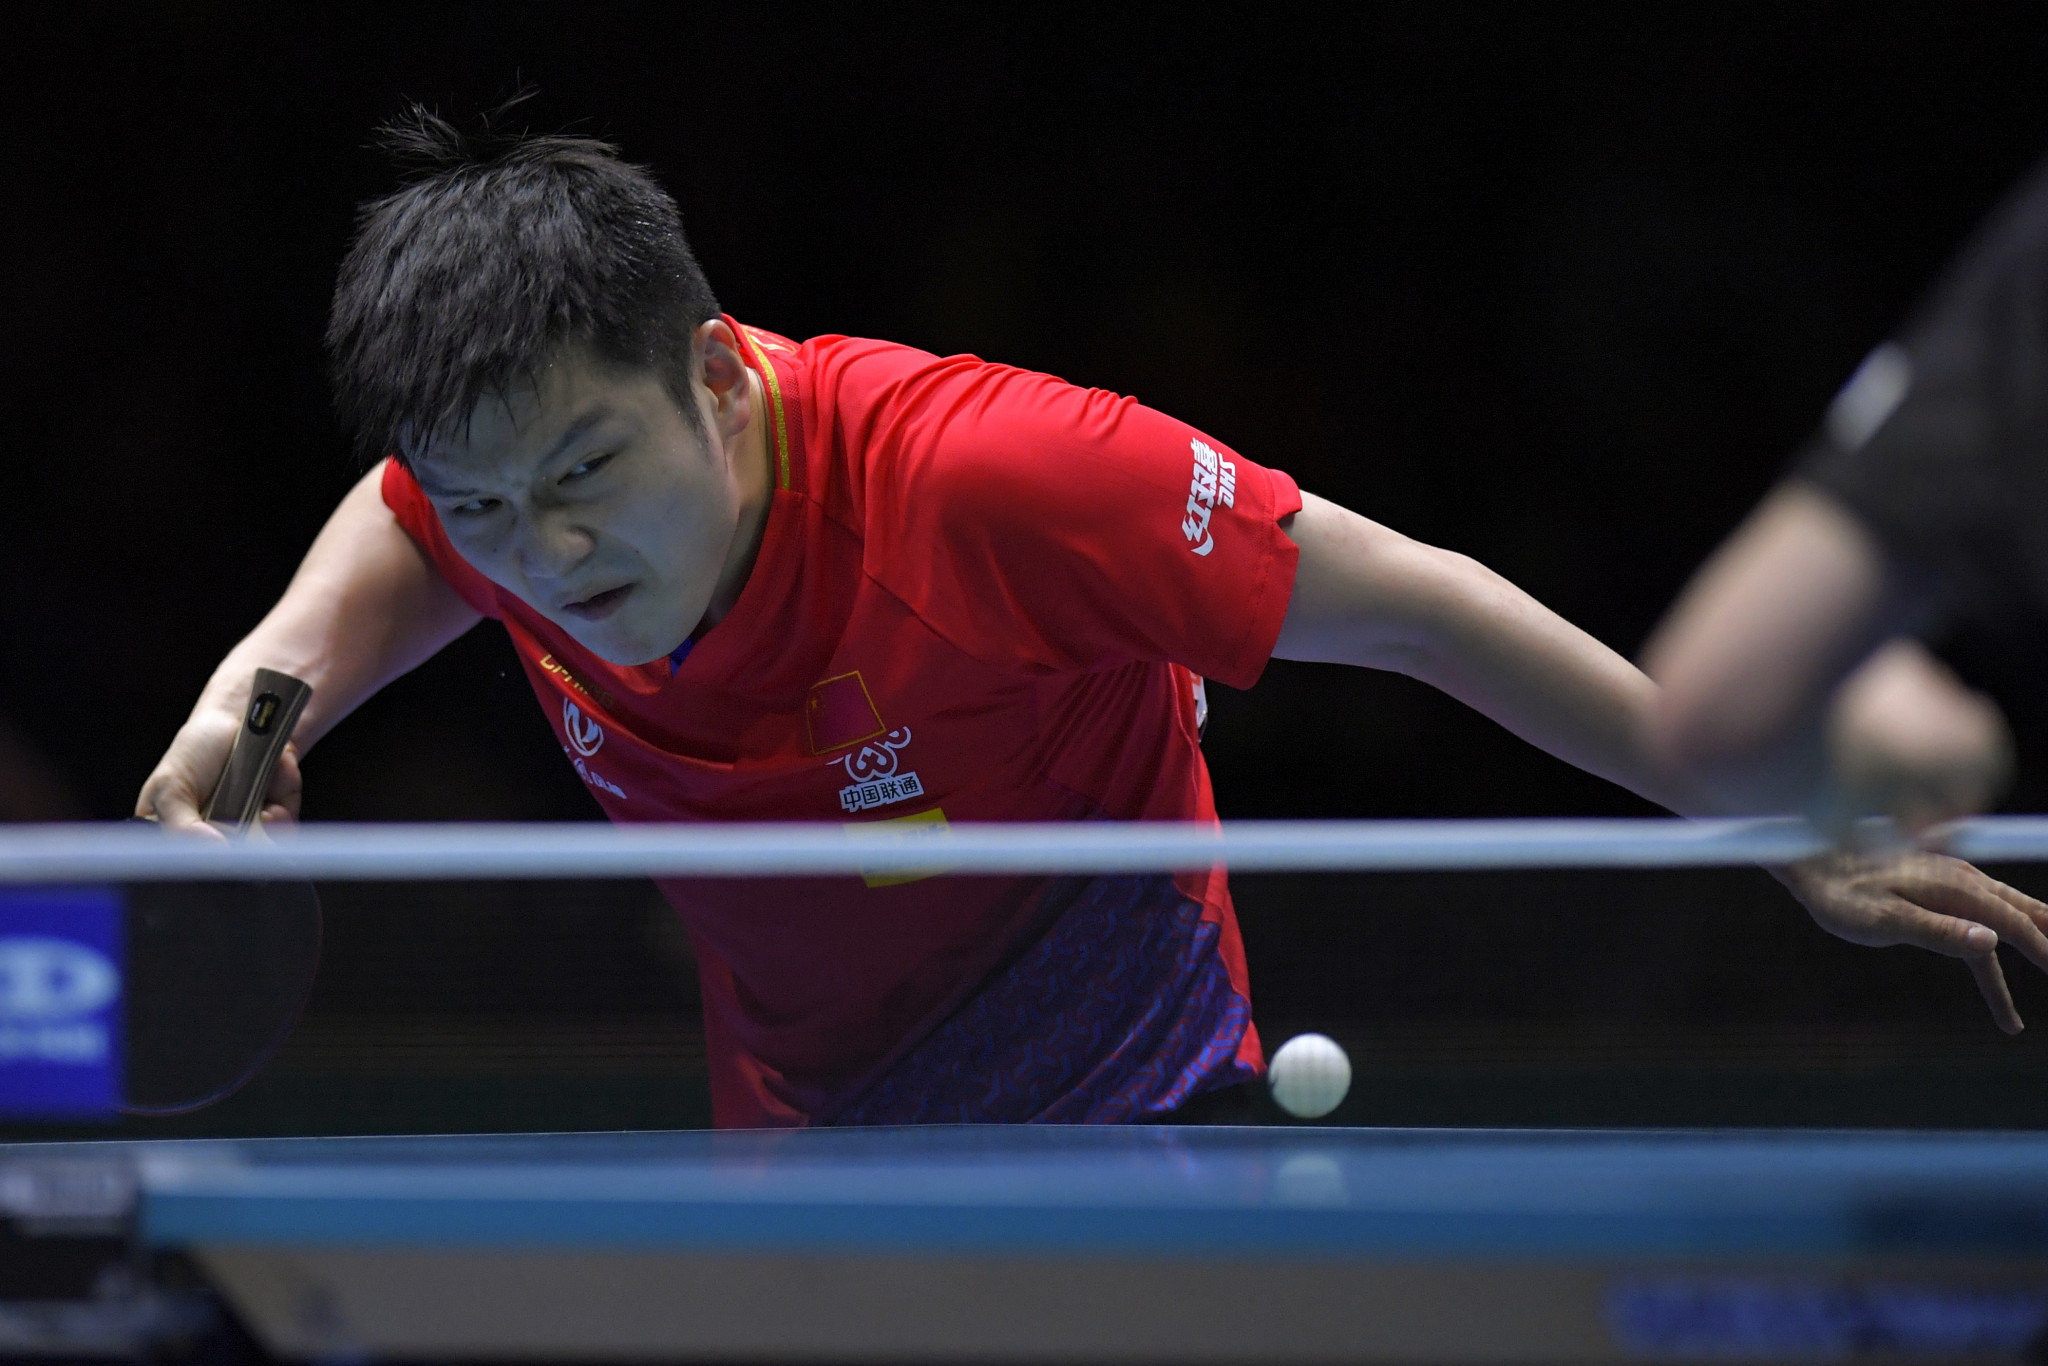 Fan Zhendong is eyeing a second title in a row in Austria ©Getty Images